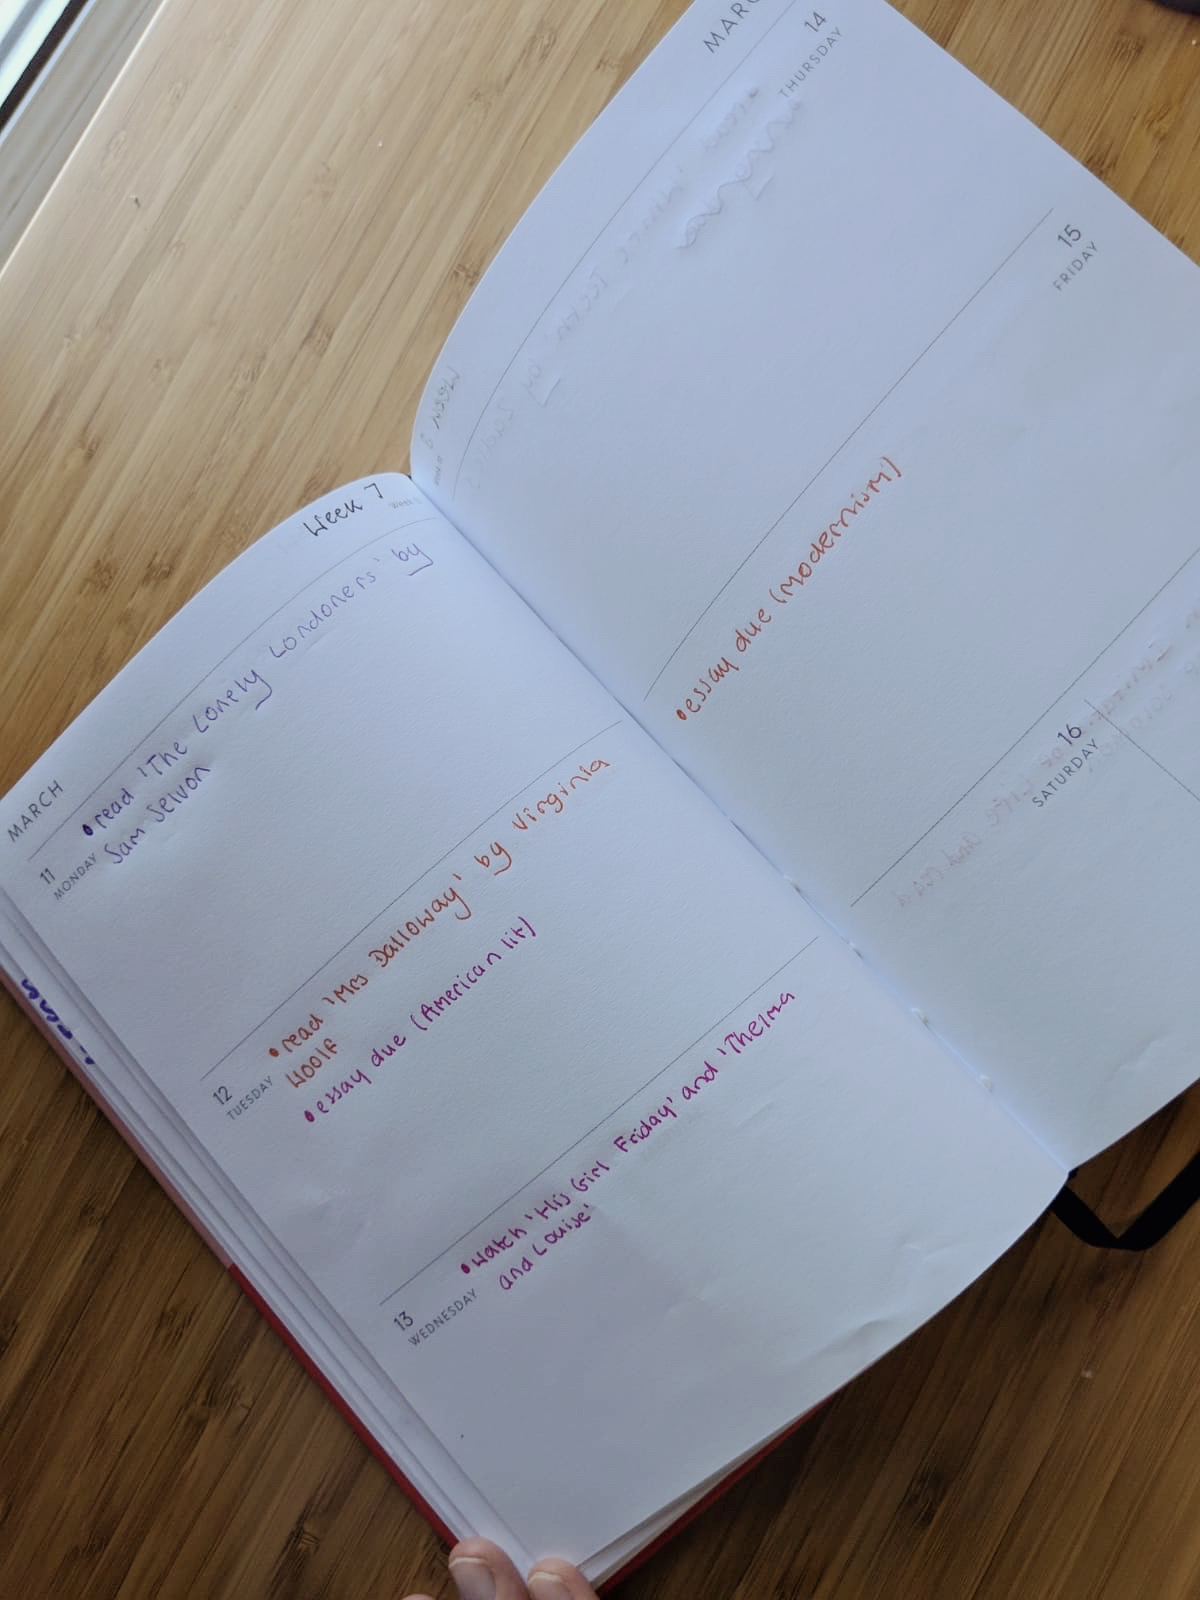 How To Become More Organised as a Student